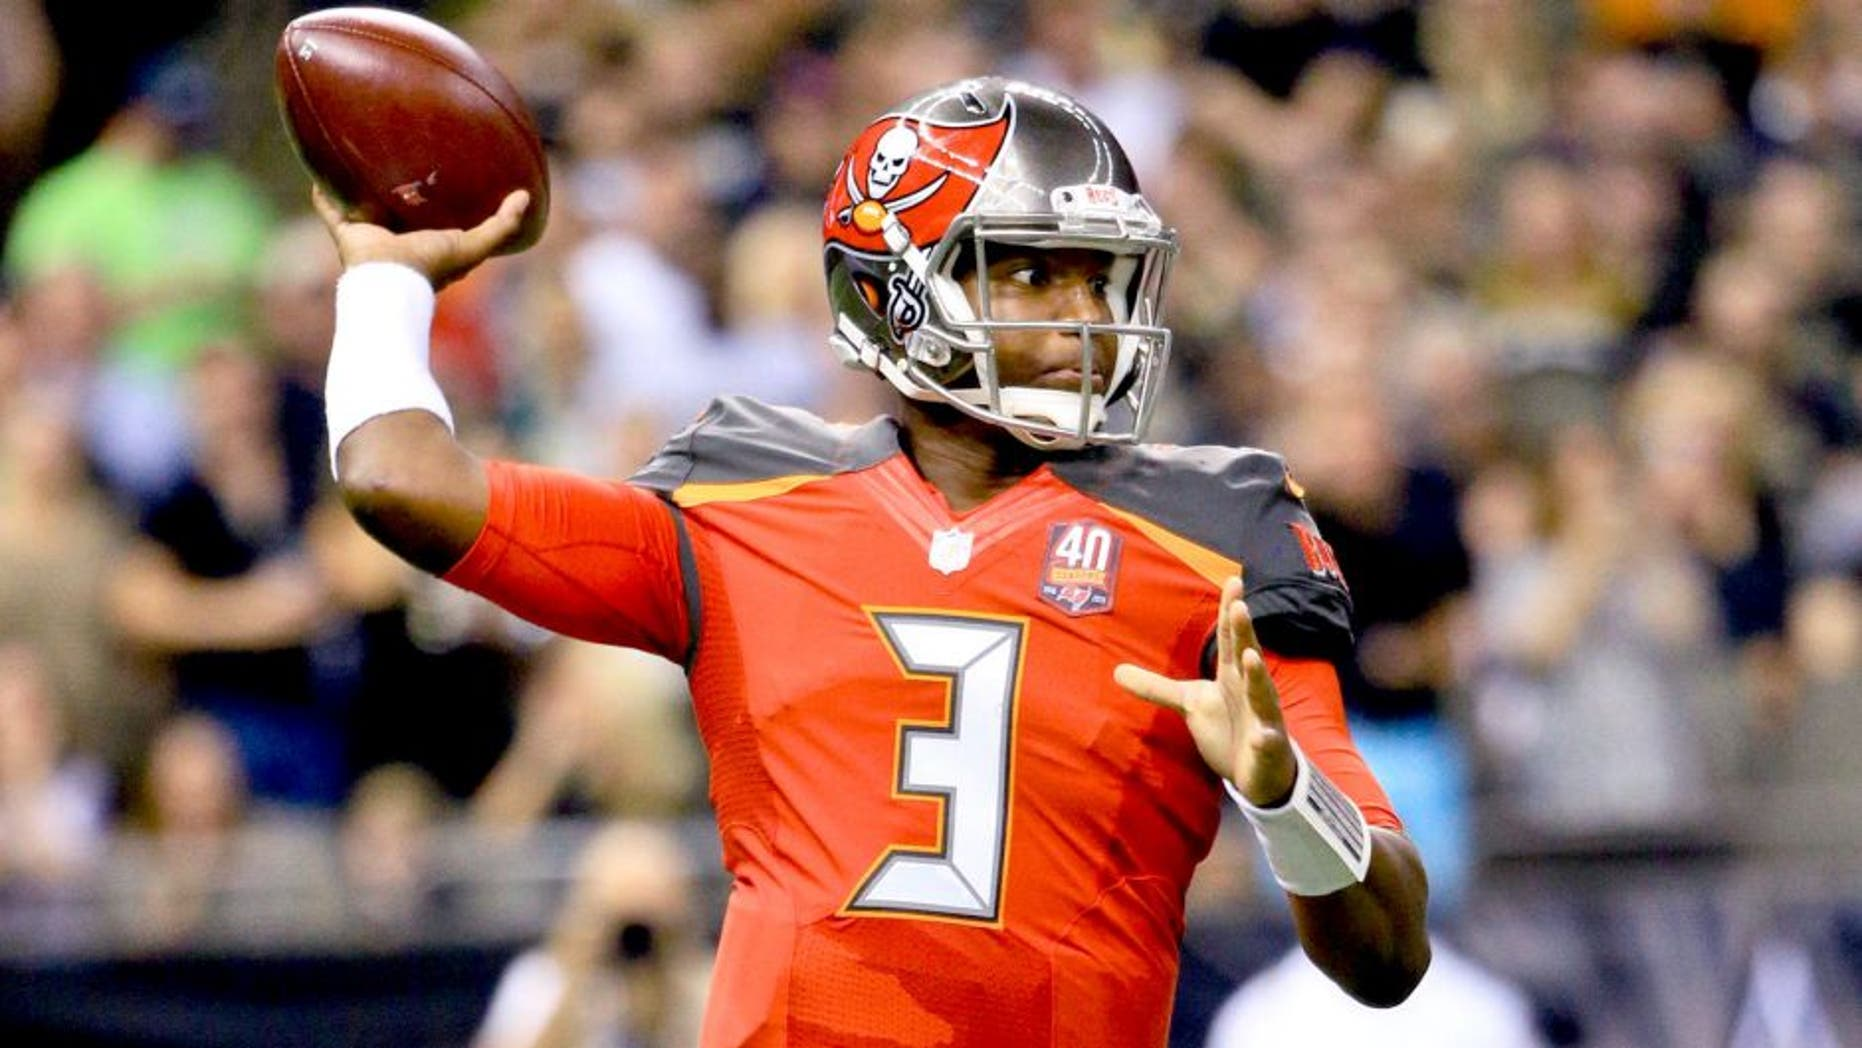 Sep 20, 2015; New Orleans, LA, USA; Tampa Bay Buccaneers quarterback Jameis Winston (3) throws the ball against the New Orleans Saints during the second quarter at the Mercedes-Benz Superdome. Mandatory Credit: Derick E. Hingle-USA TODAY Sports